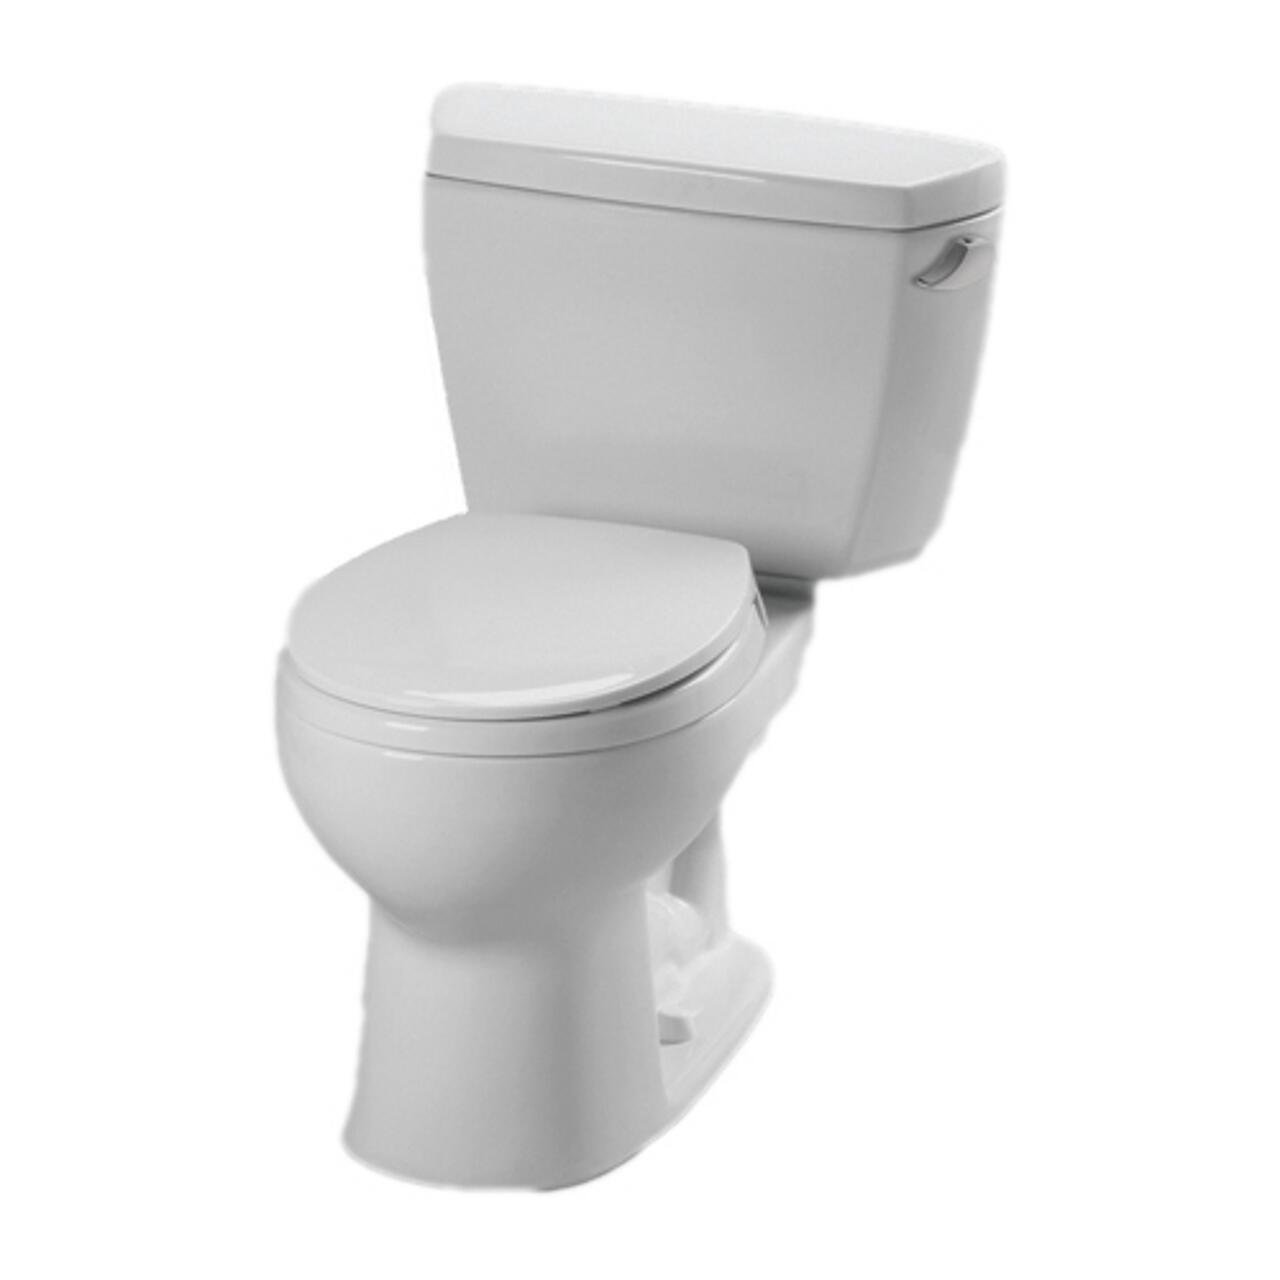 Toto CST743ERBNo.01 Eco Drake Toilet-1.28-GPF R with Right Hand Trip Lever and Boltdown Tank Lid In Cotton